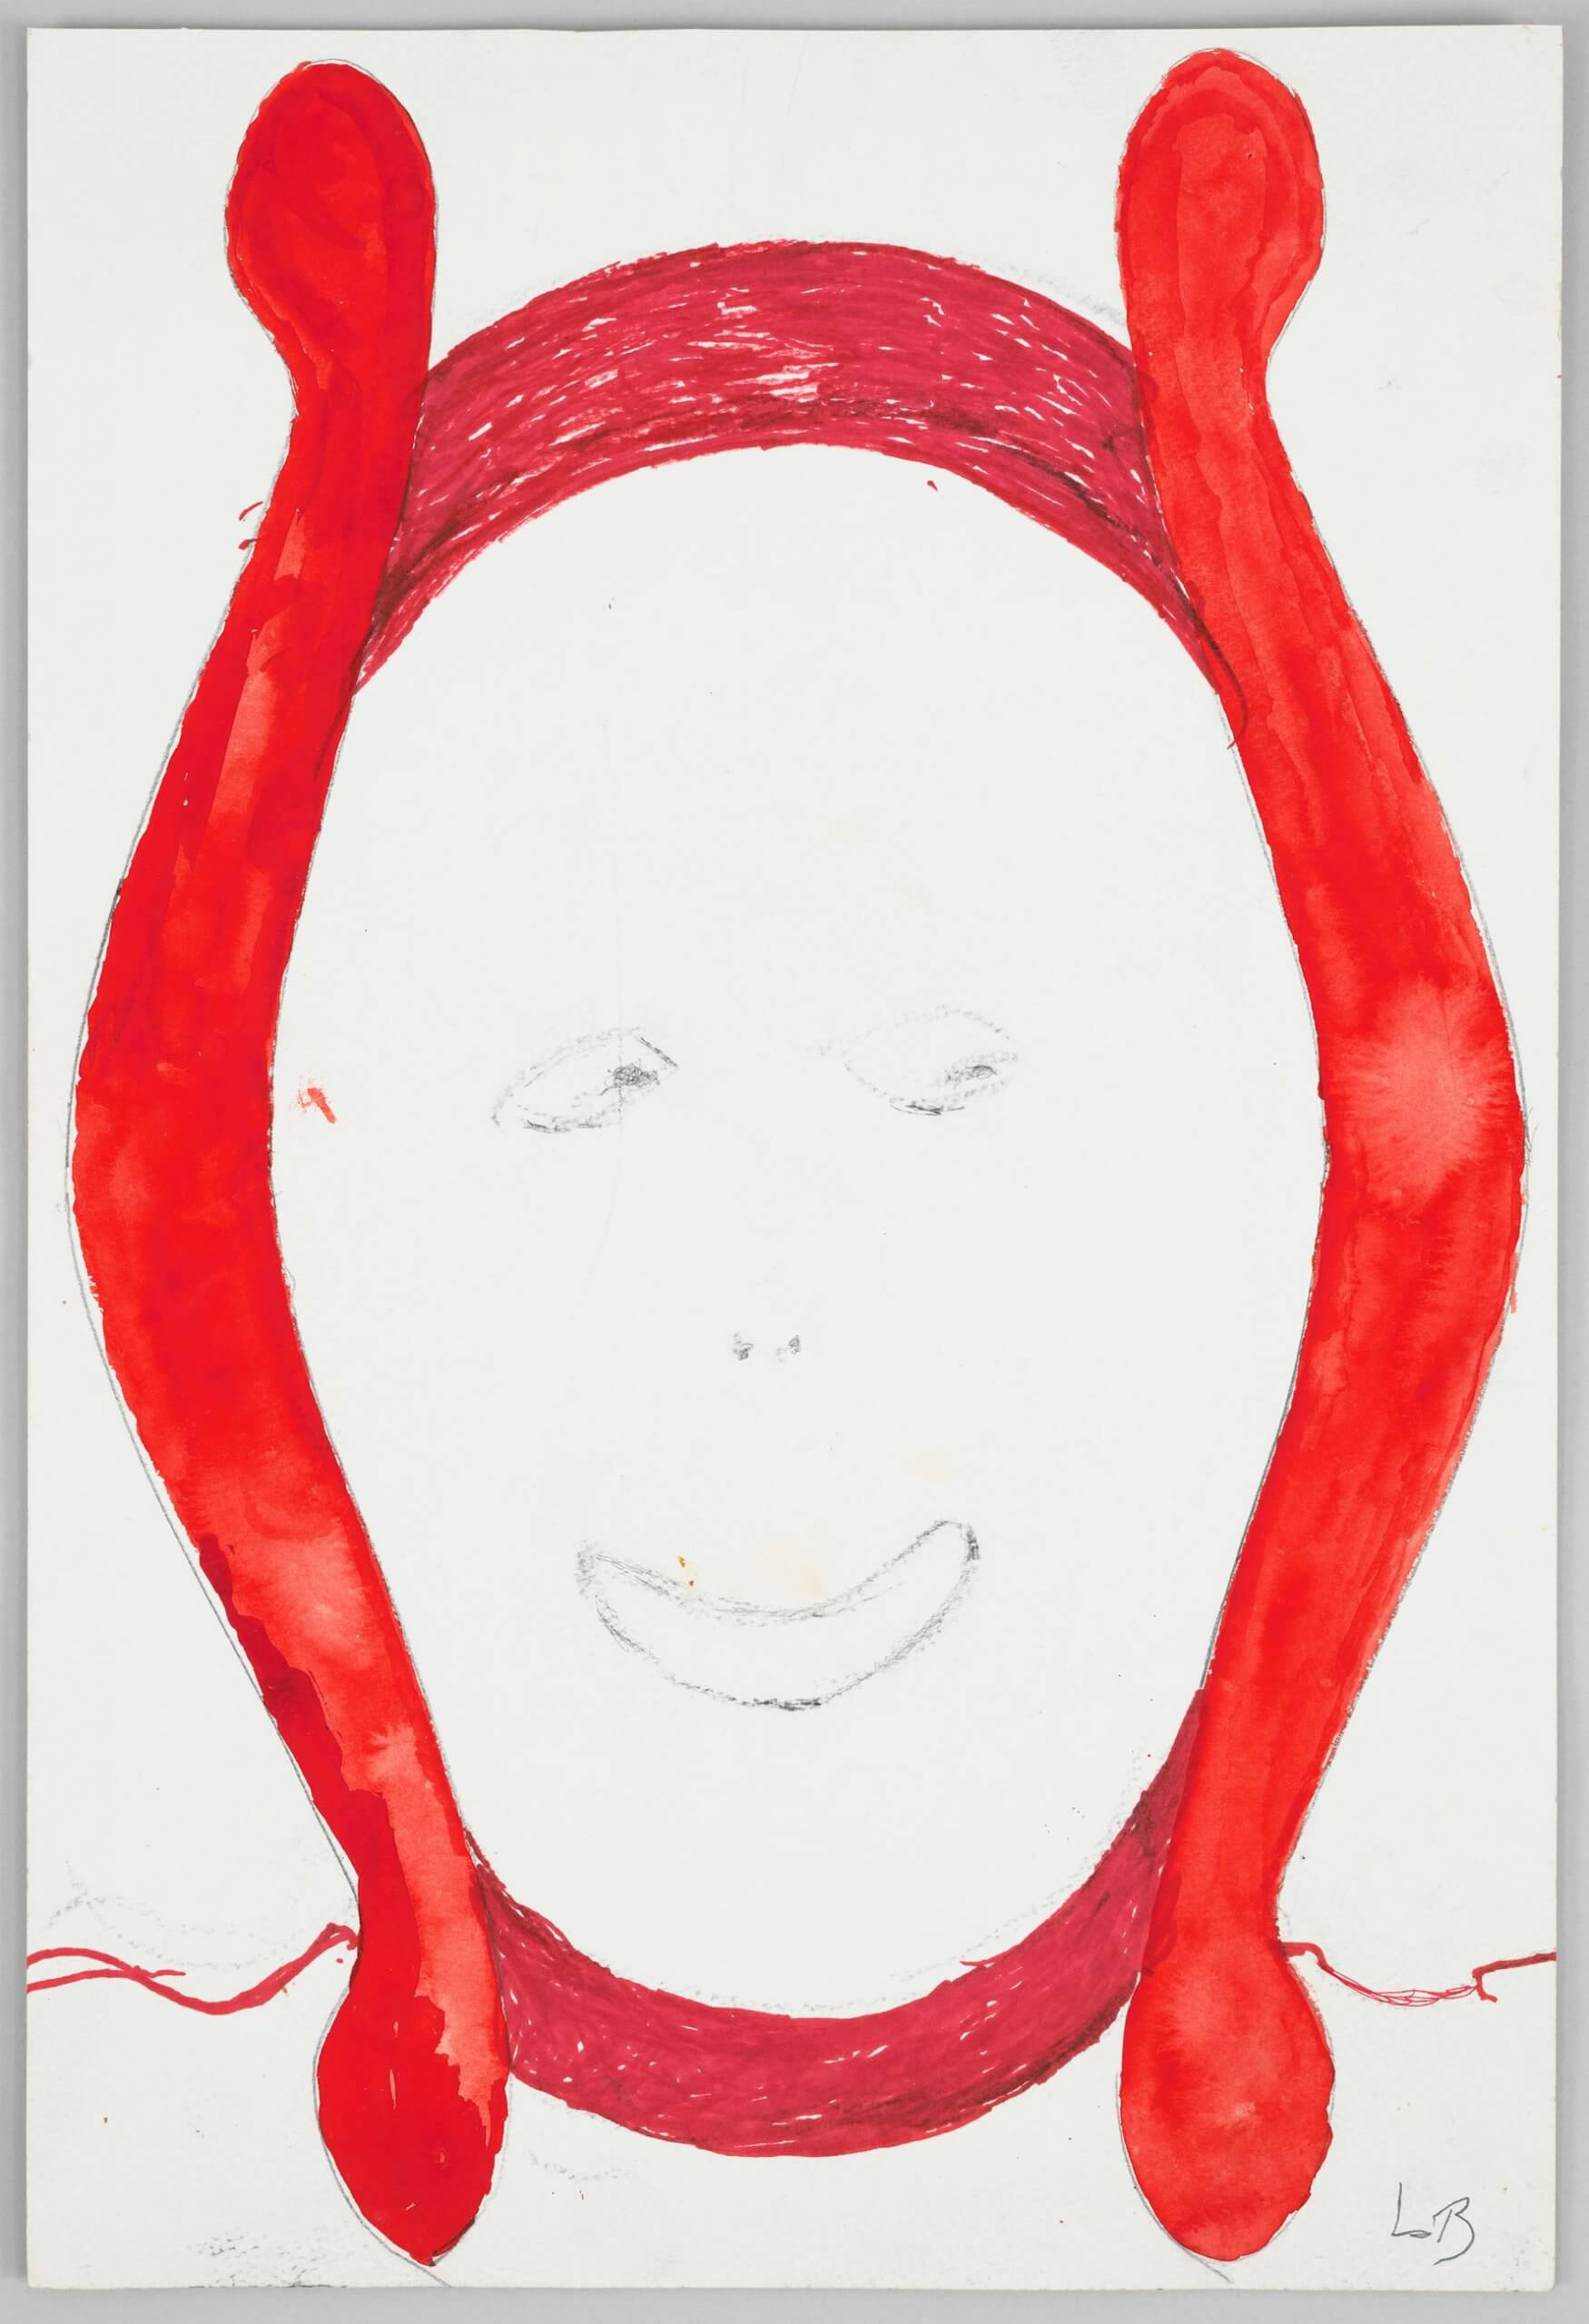 Untitled Louise Bourgeois 1997 Watercolor, ink and charcoal on paper, courtesy Hauser & Wirth